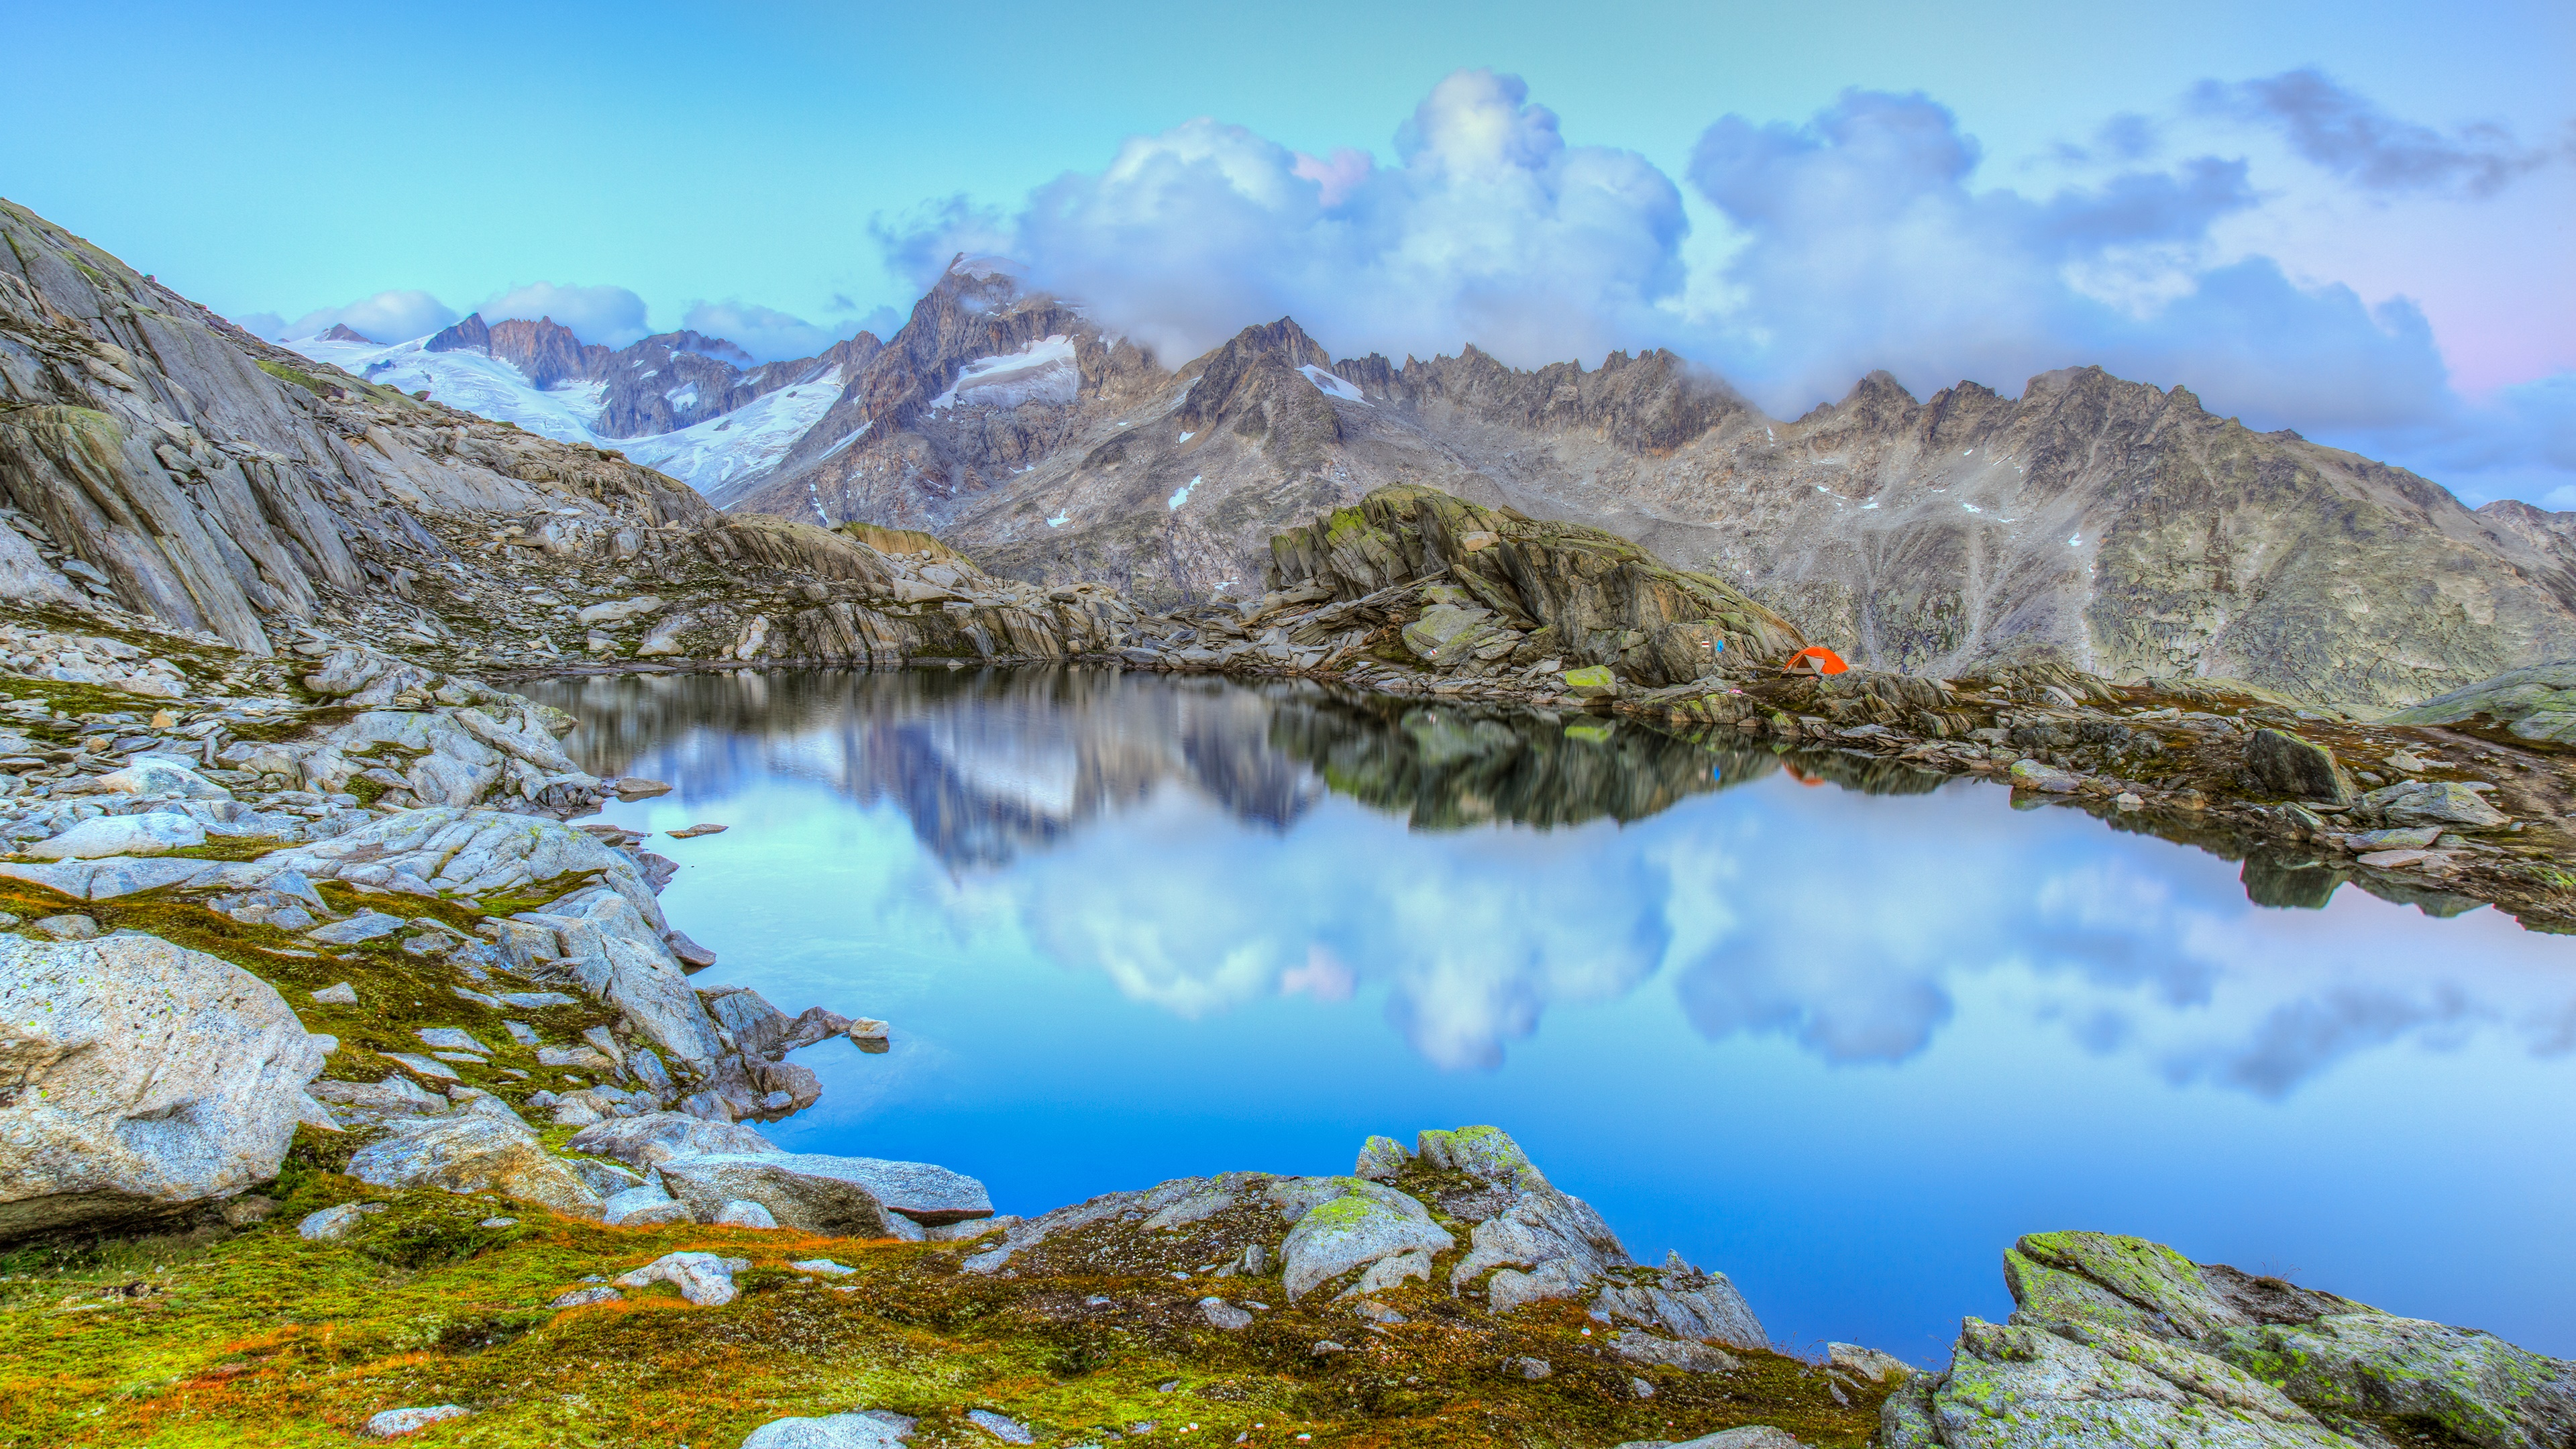 Pond in mountains wallpaper